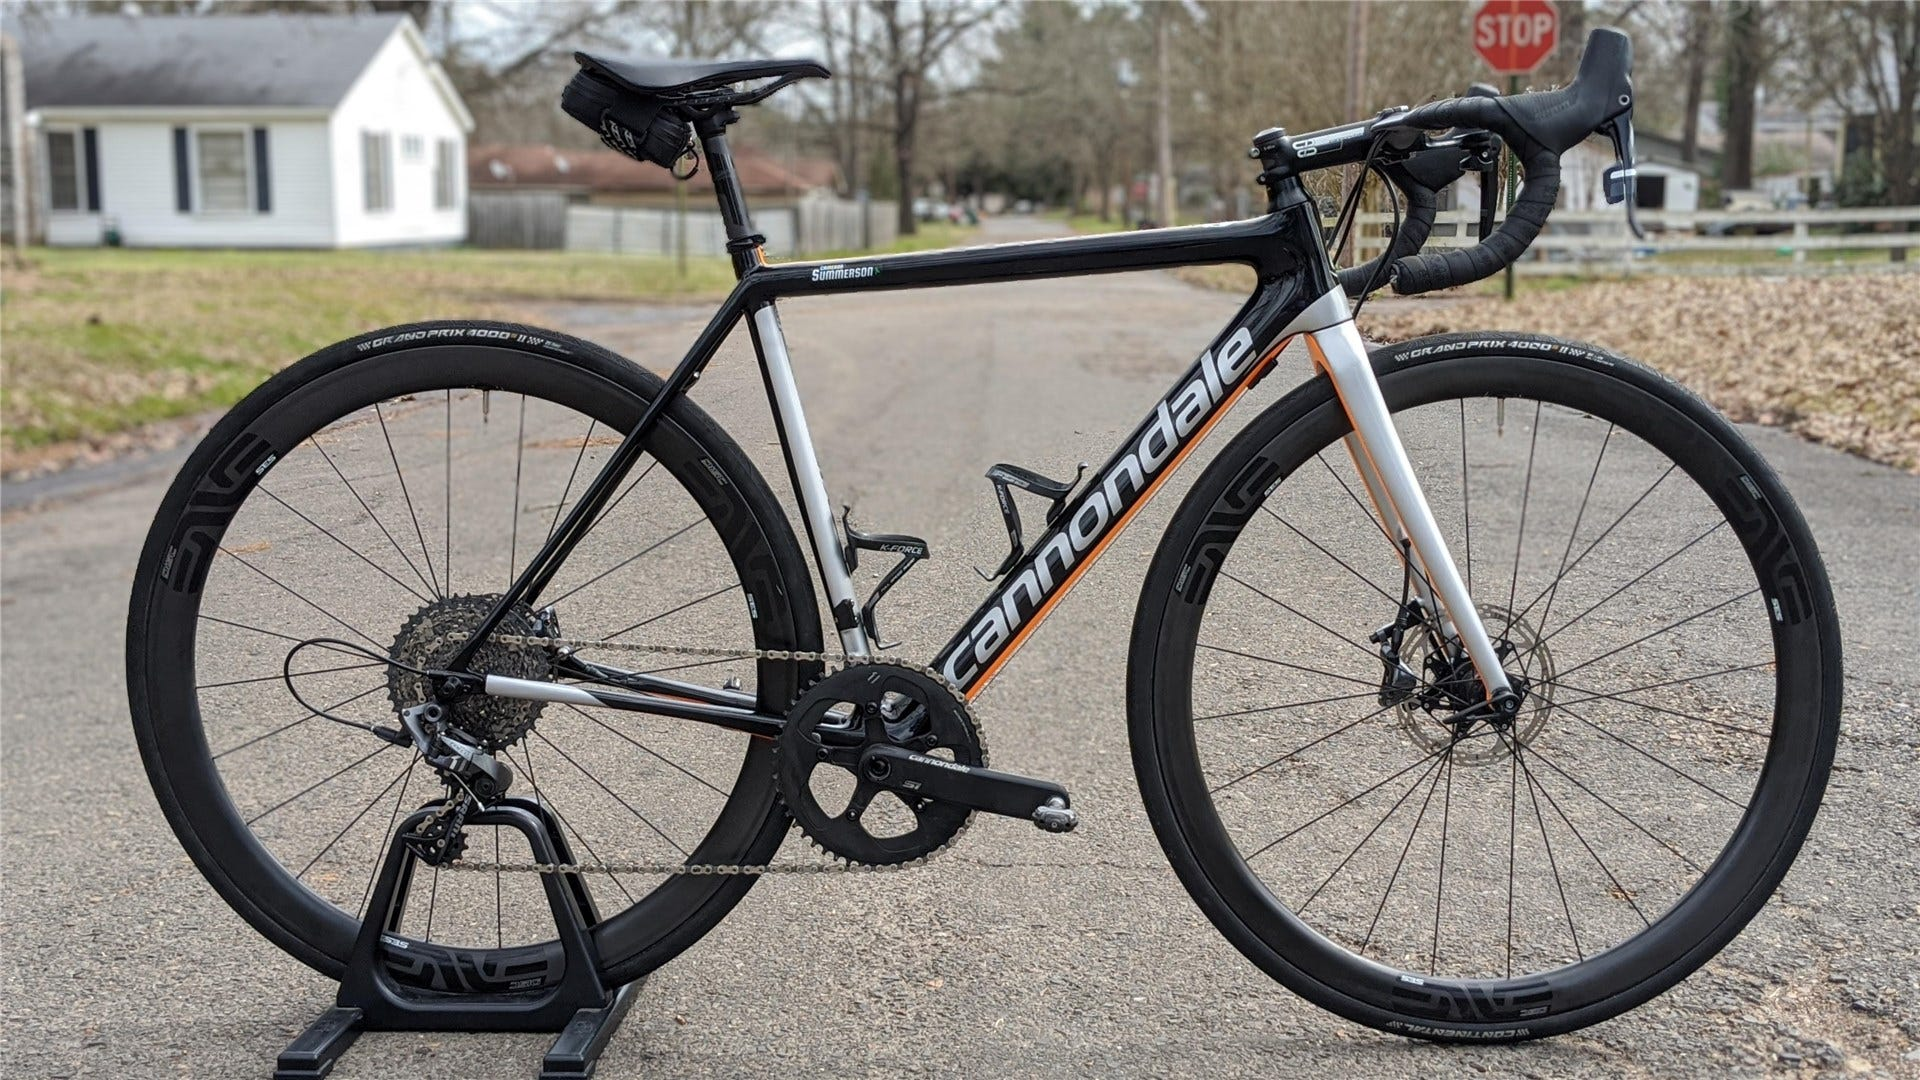 A black/silver/orange Cannondale SuperSix Evo 1x